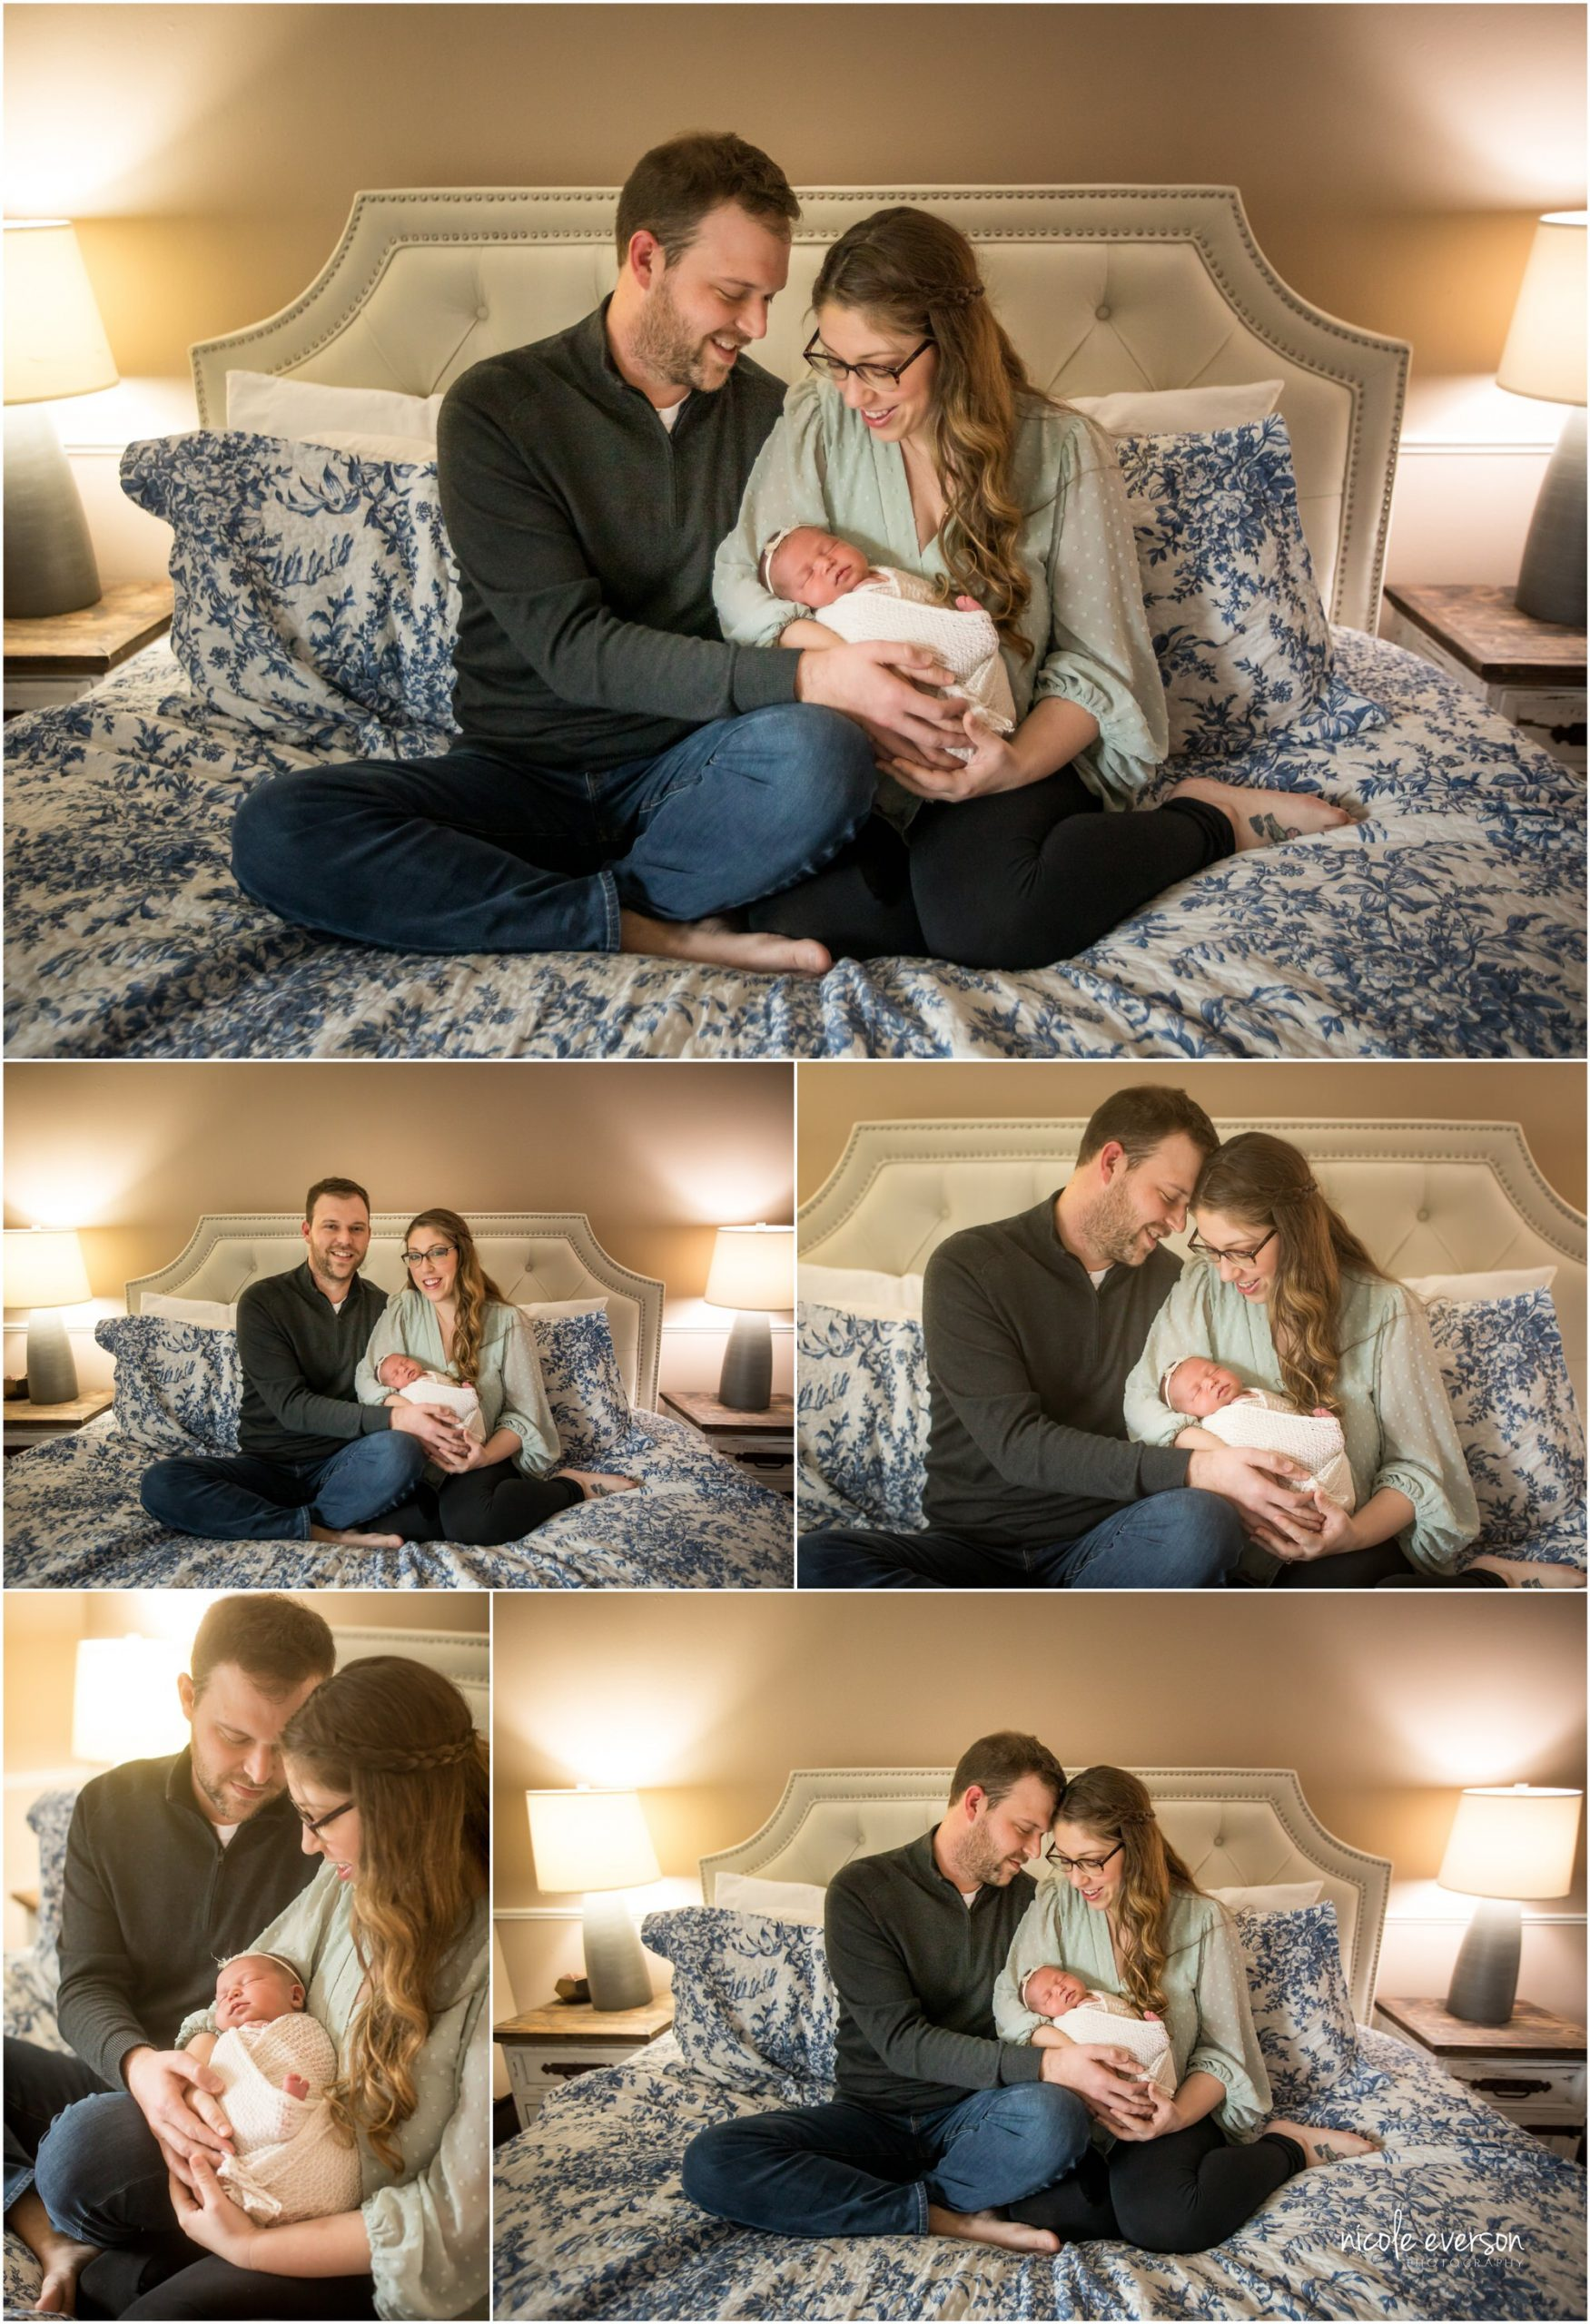 Tallahassee newborn lifestyle photographer Nicole Everson Photography